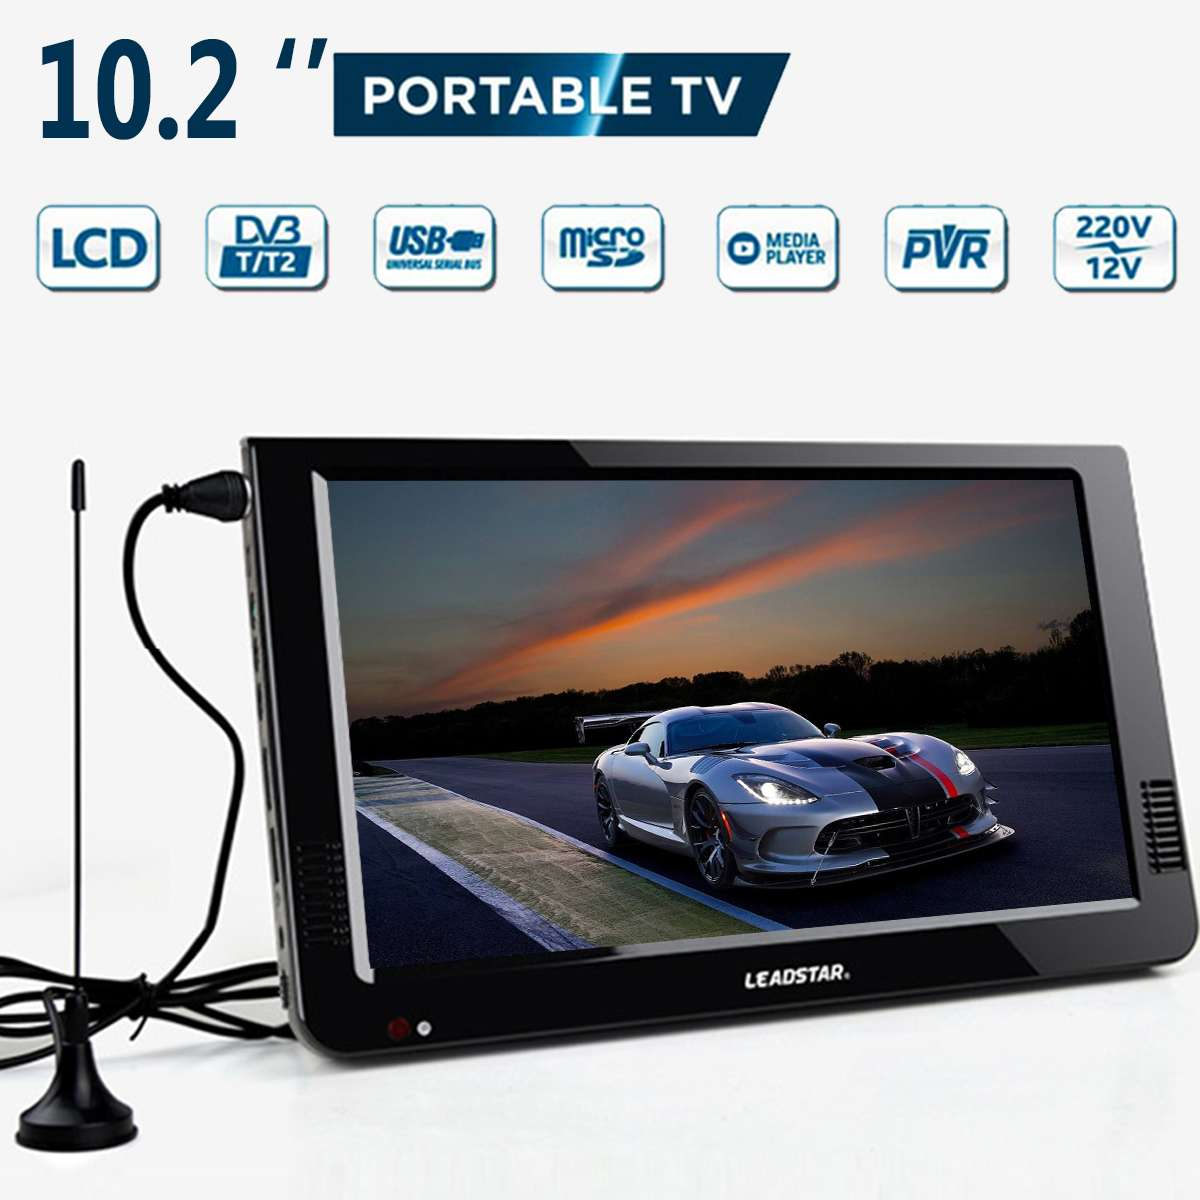 Outdoor 10.2 Inch 12V Portable Digital Analog Television DVB-T / DVB-T2 TFT LED HD TV Support TF Card USB Audio Car TelevisionOutdoor 10.2 Inch 12V Portable Digital Analog Television DVB-T / DVB-T2 TFT LED HD TV Support TF Card USB Audio Car Television